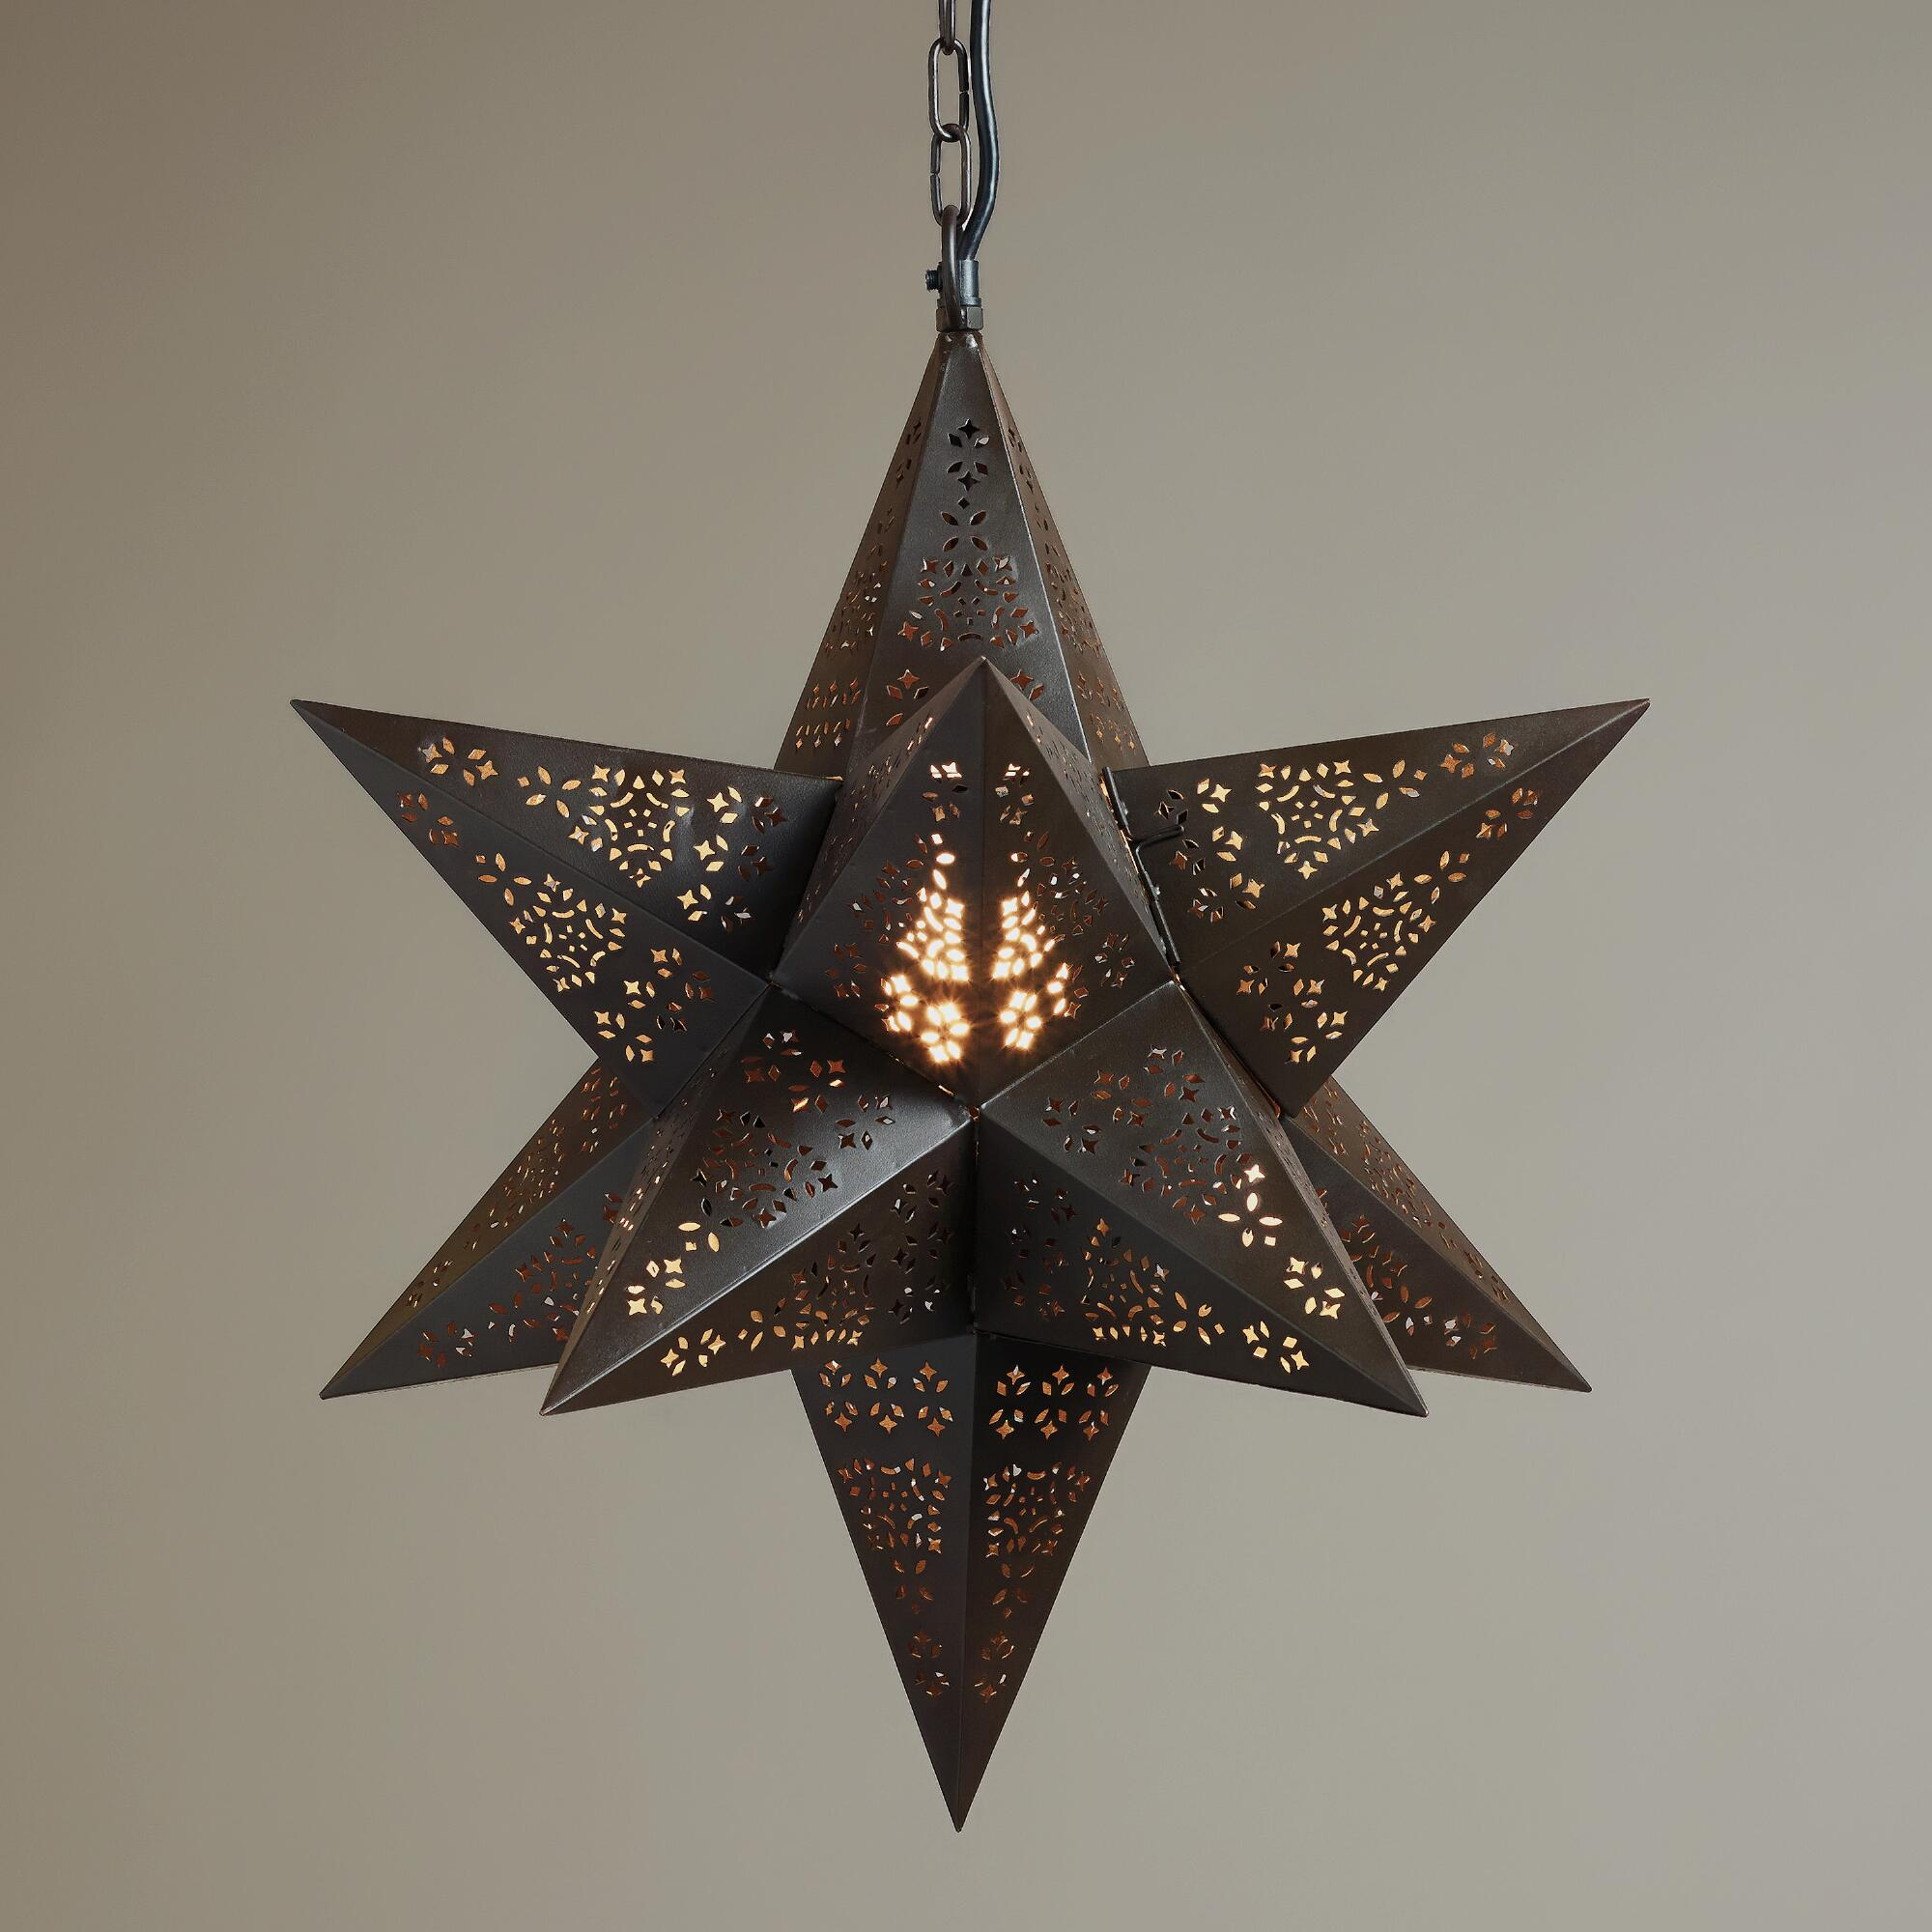 moravian star hanging pendant lamp world market. Black Bedroom Furniture Sets. Home Design Ideas